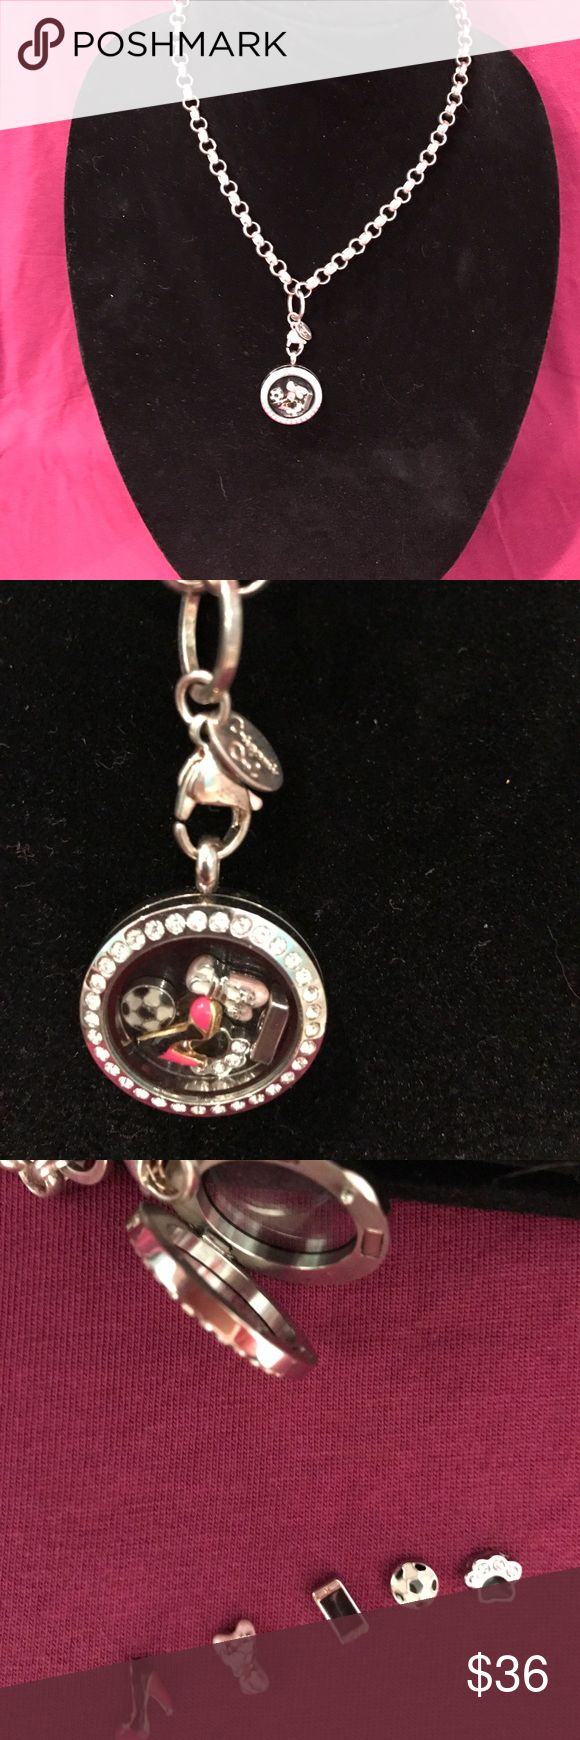 Origami owl necklace Origami owl necklace with 5 charms. High heel , paw print, soccer ball, ballet slippers, cell phone. Jewelry Necklaces